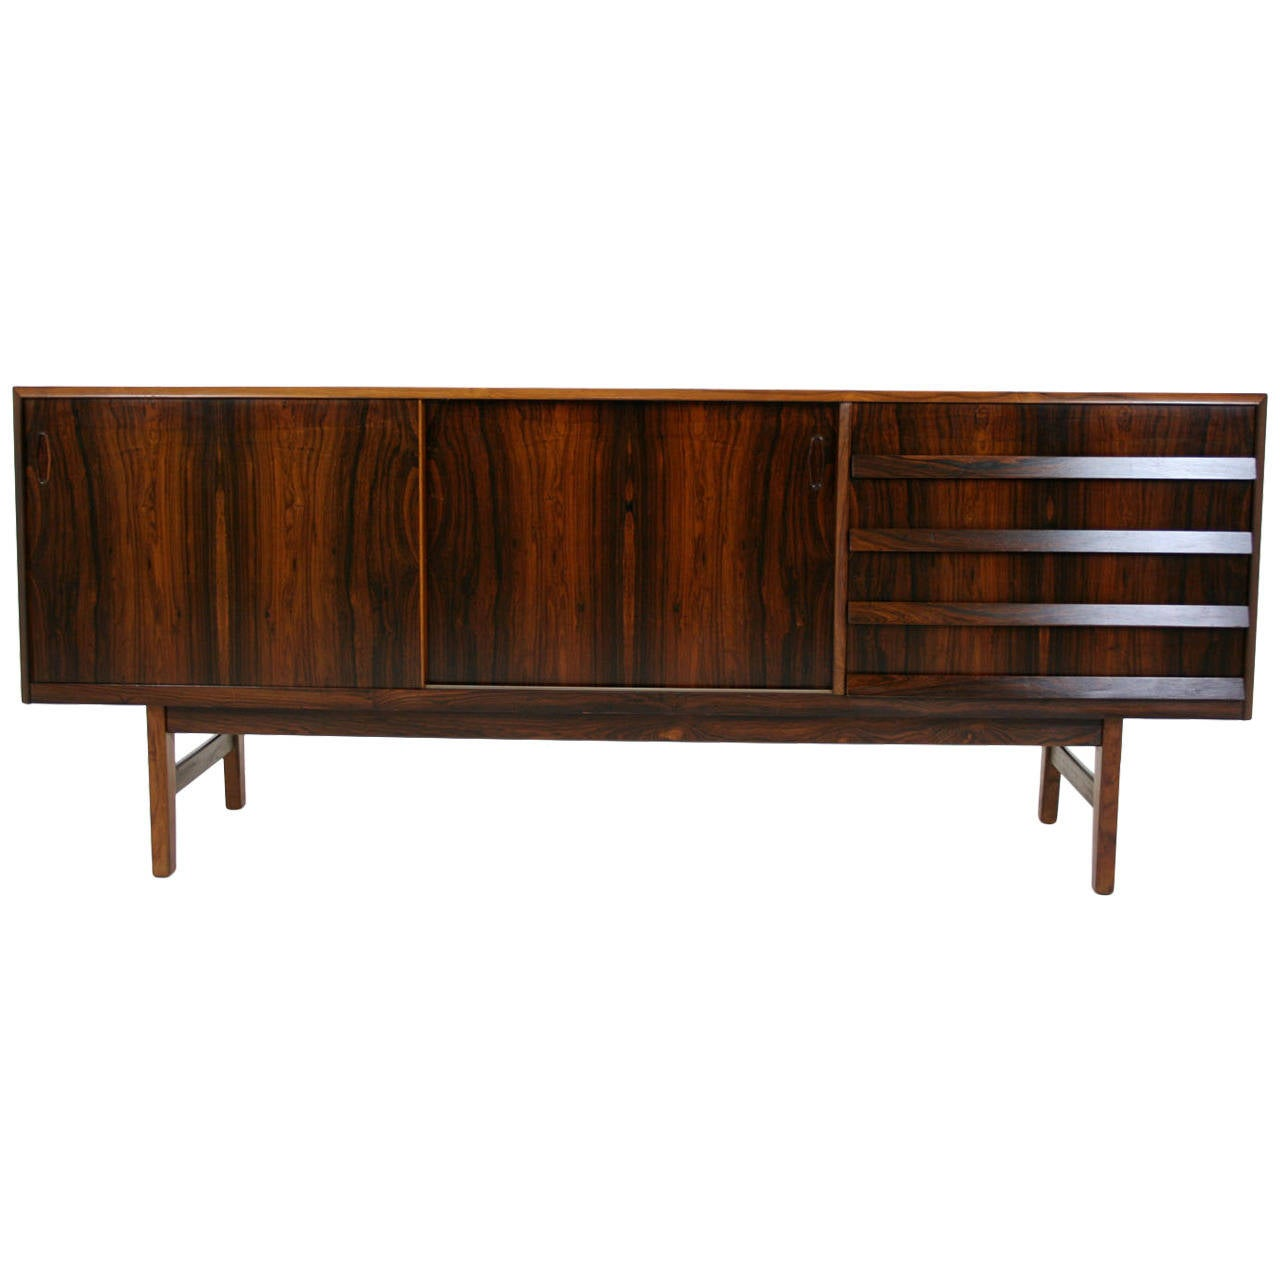 danish mid century modern rosewood credenza or sideboard. Black Bedroom Furniture Sets. Home Design Ideas